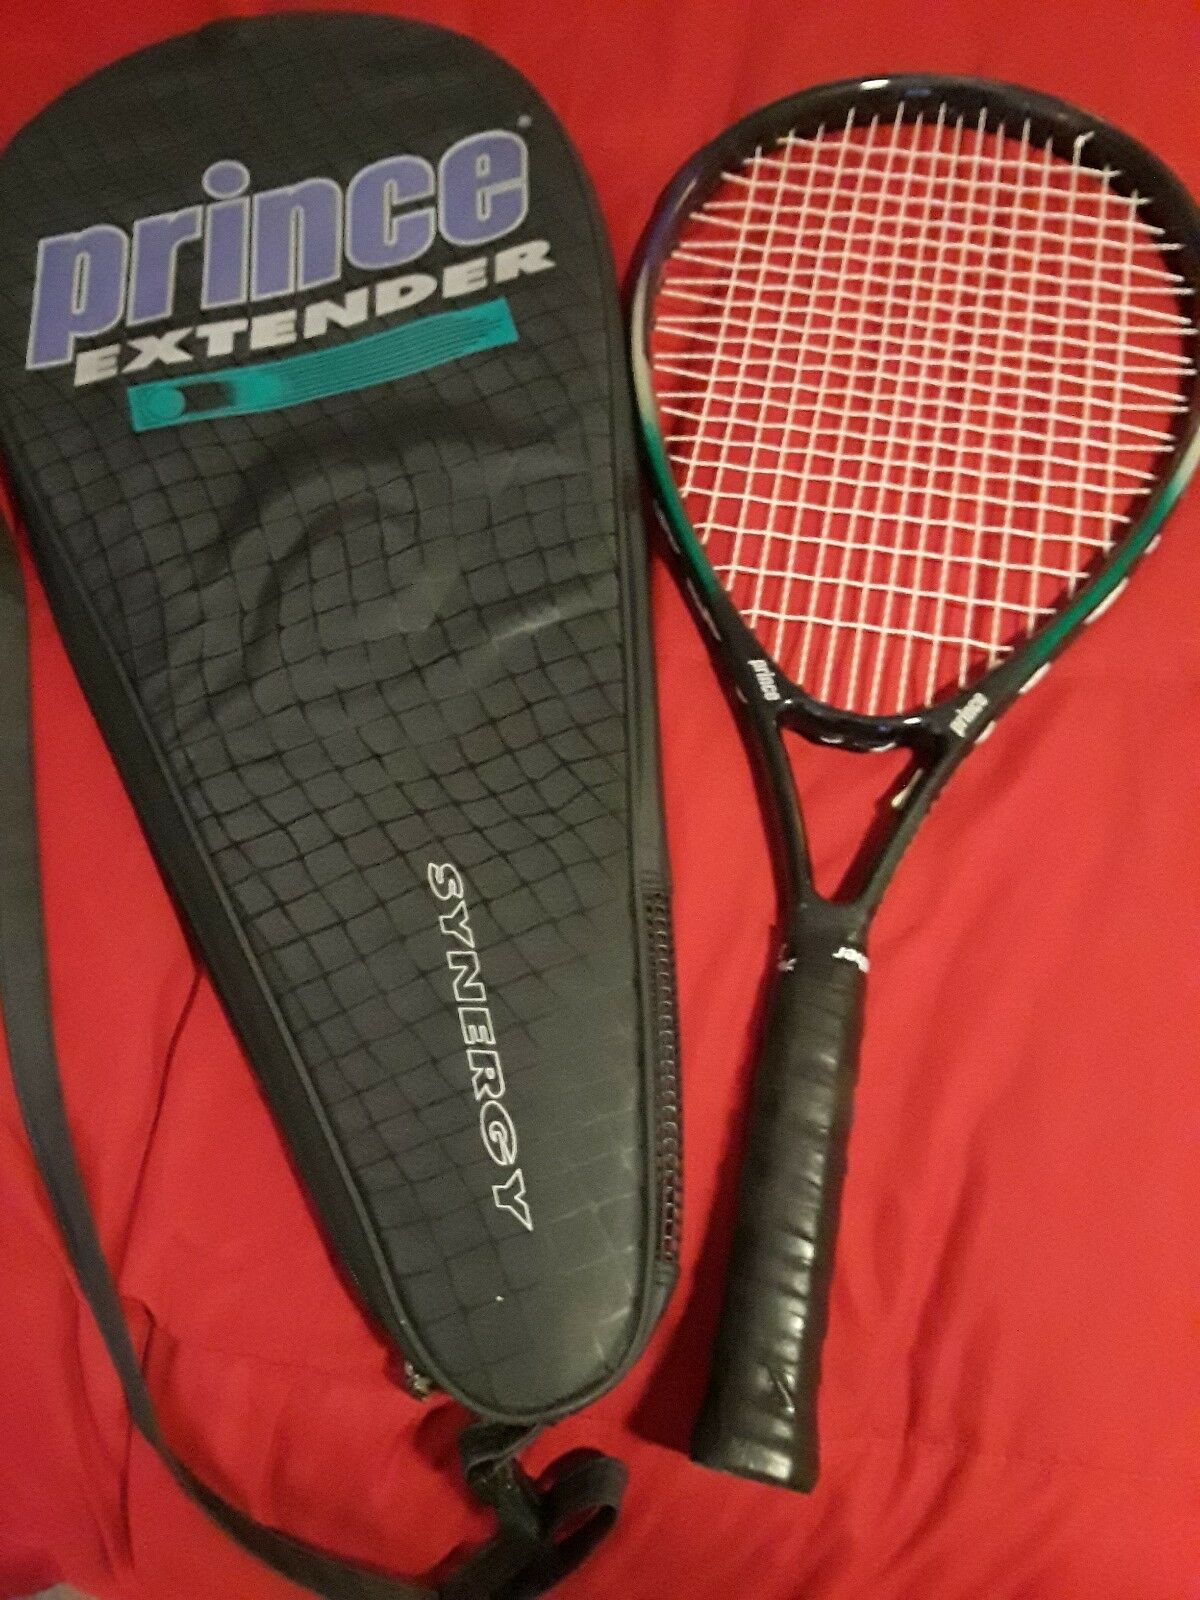 Prince CTS Synergy Extender 4 1 2 Tennis Racquet w case NEW OVERGRIP